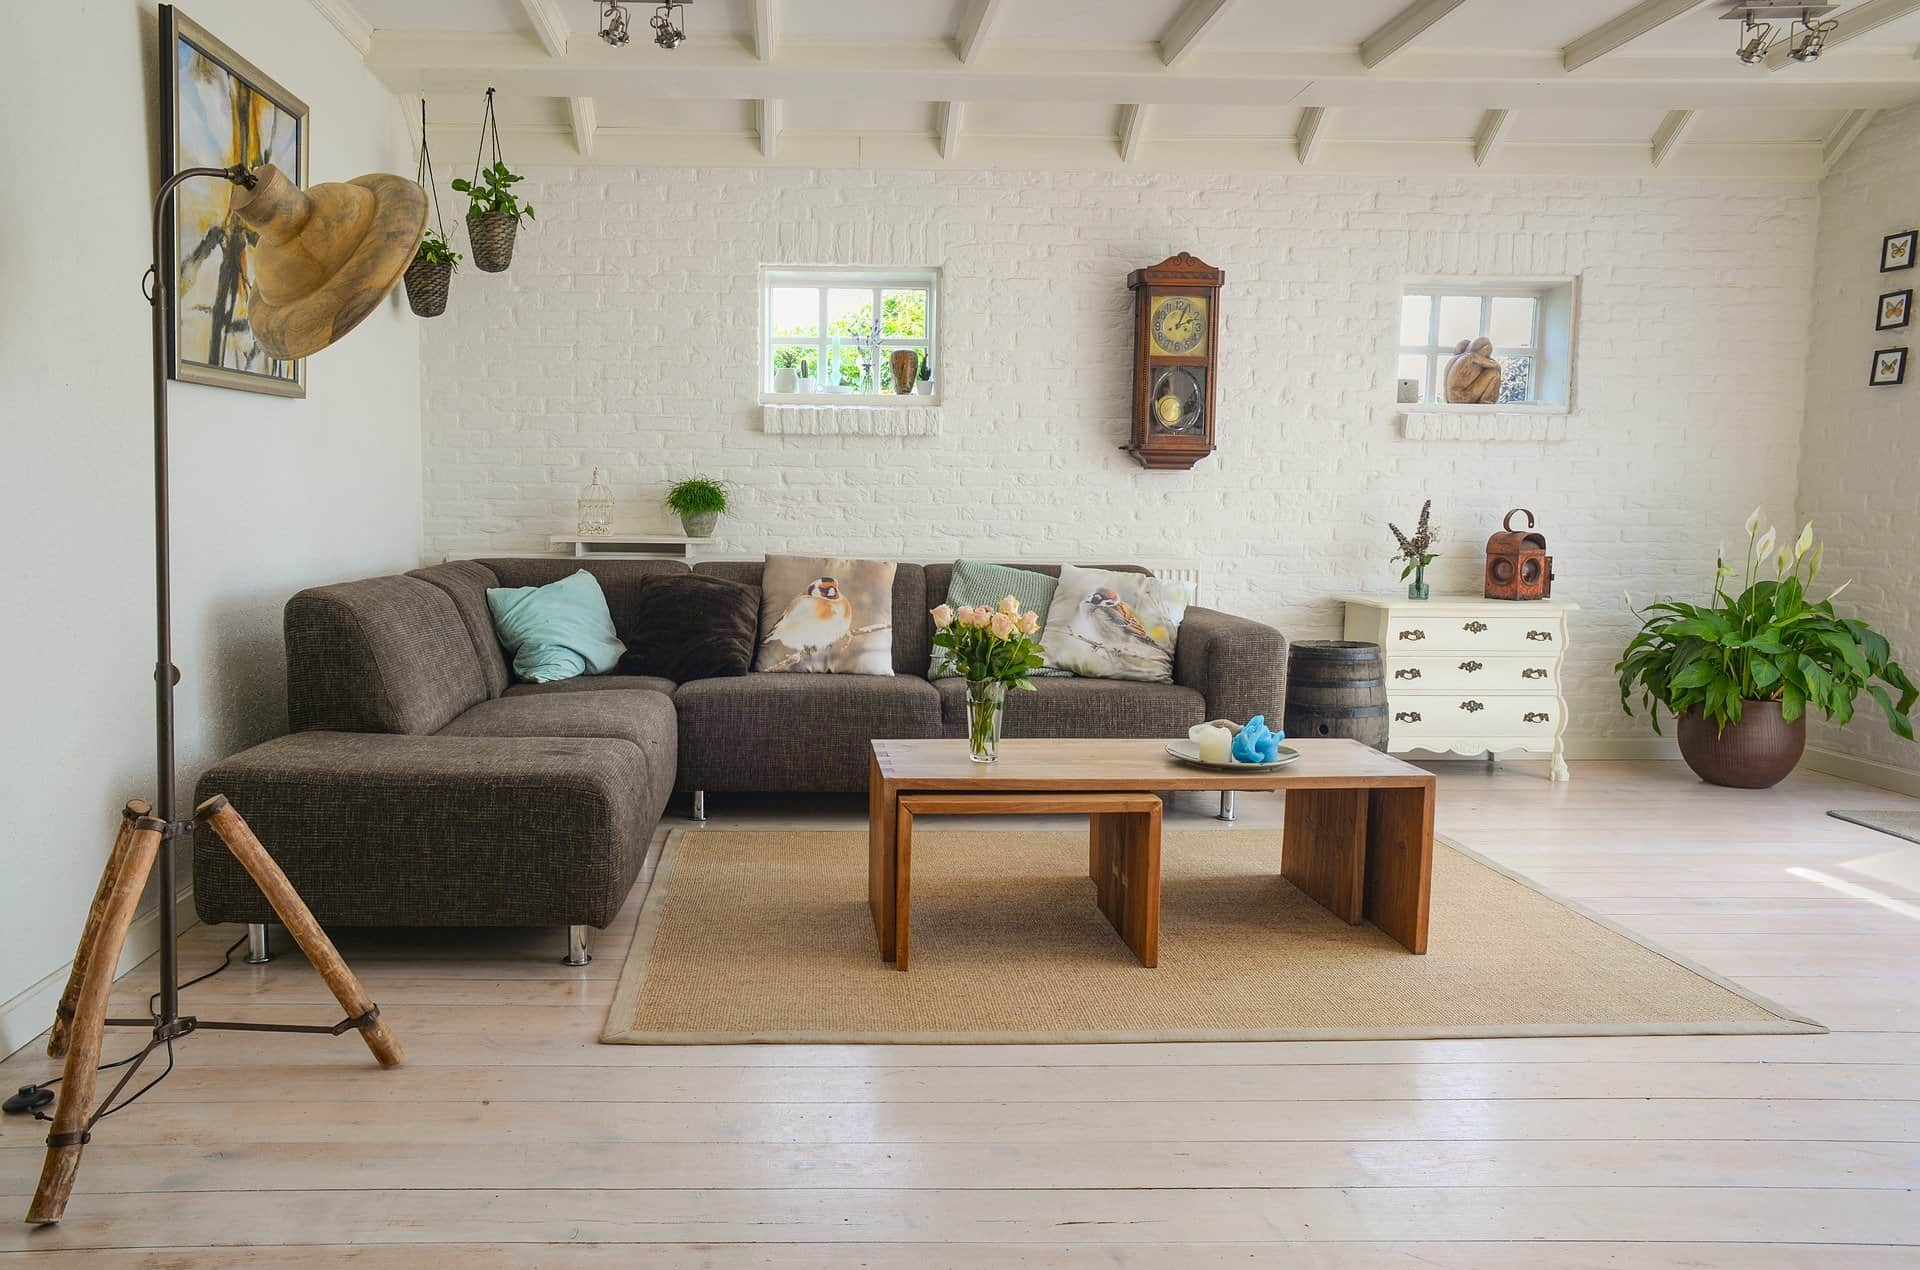 Cozy living area including vintage and modern decors designed by a M.Des interior design student